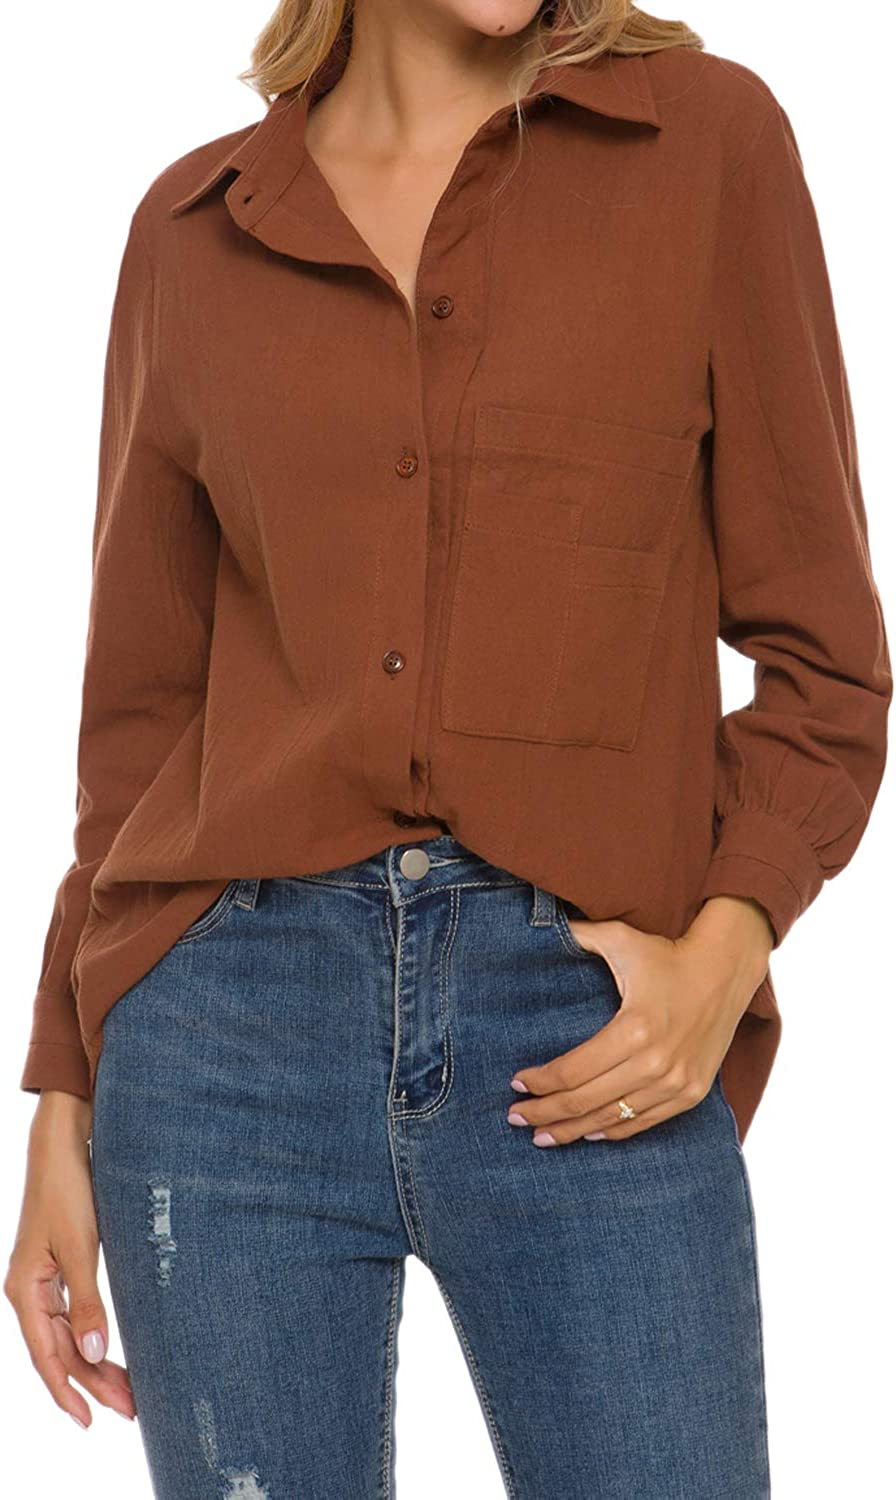 TOP-MAX Button Down Shirts for Women, Casual Cotton Linen Blouse High Low Shirt Long Sleeve Tops with Pockets